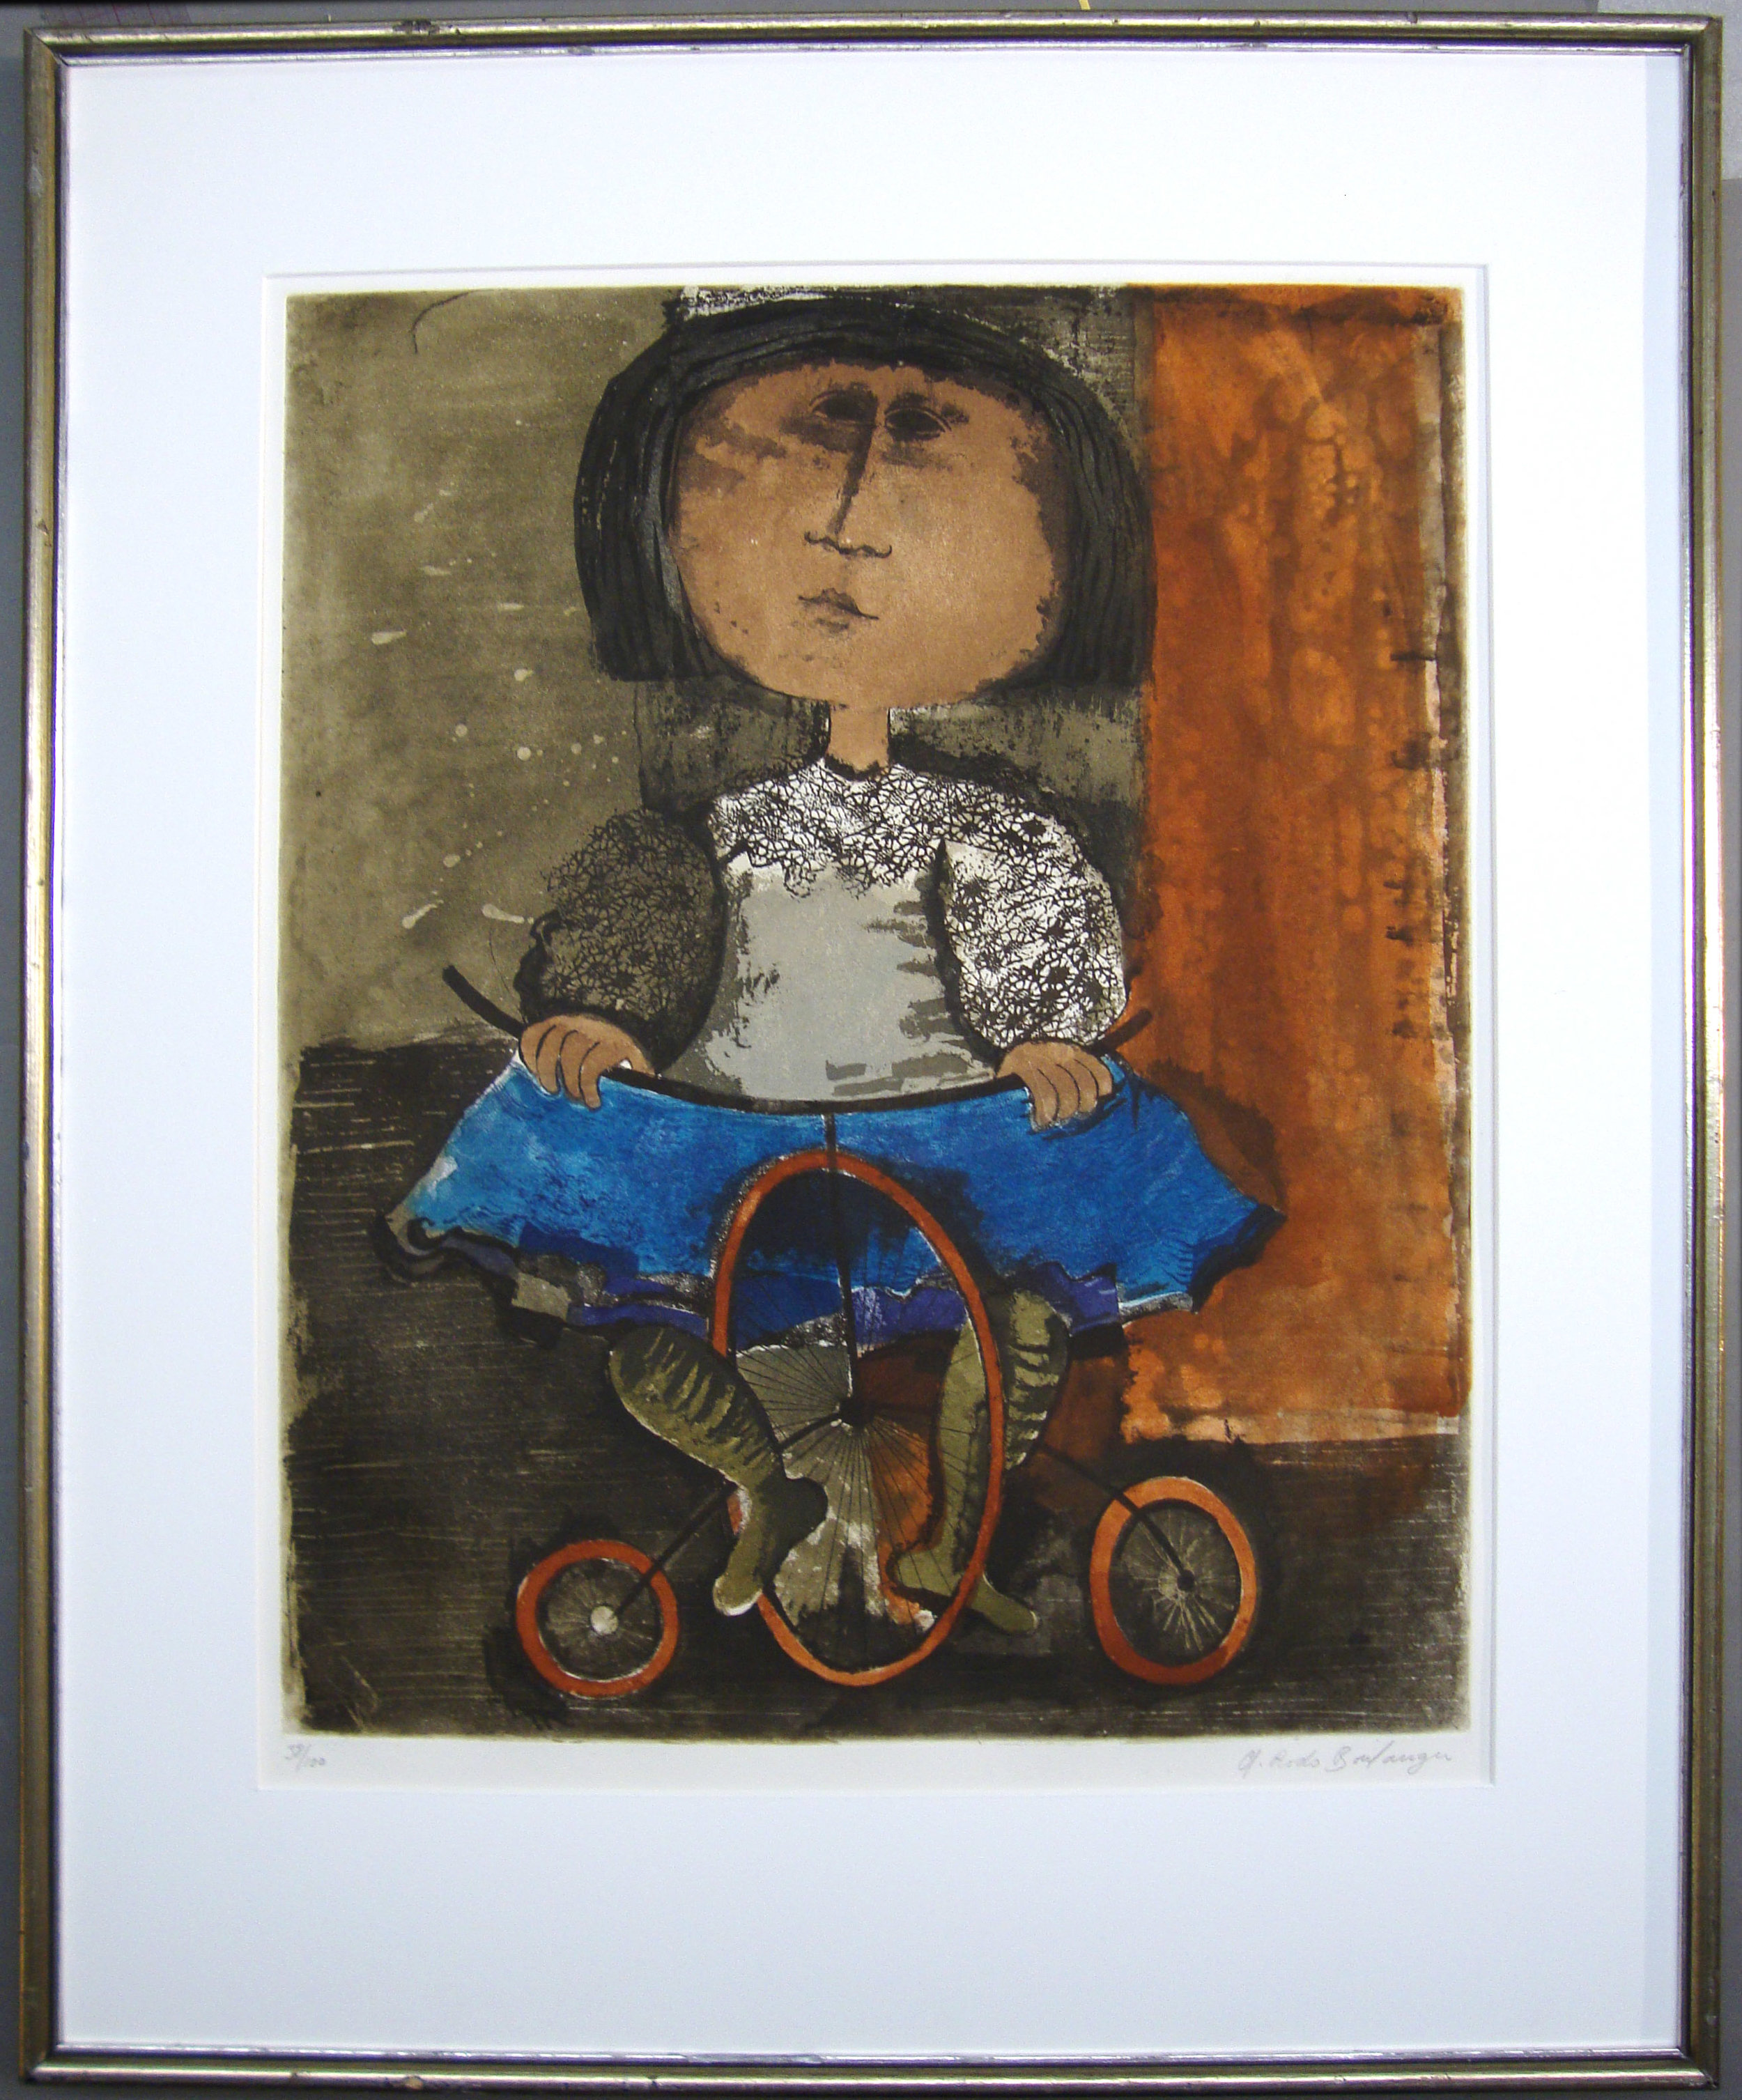 Graciela Rodo Boulanger, Untitled (girl on bicycle), color lithograph, 22.5 x 18, #38-100.JPG